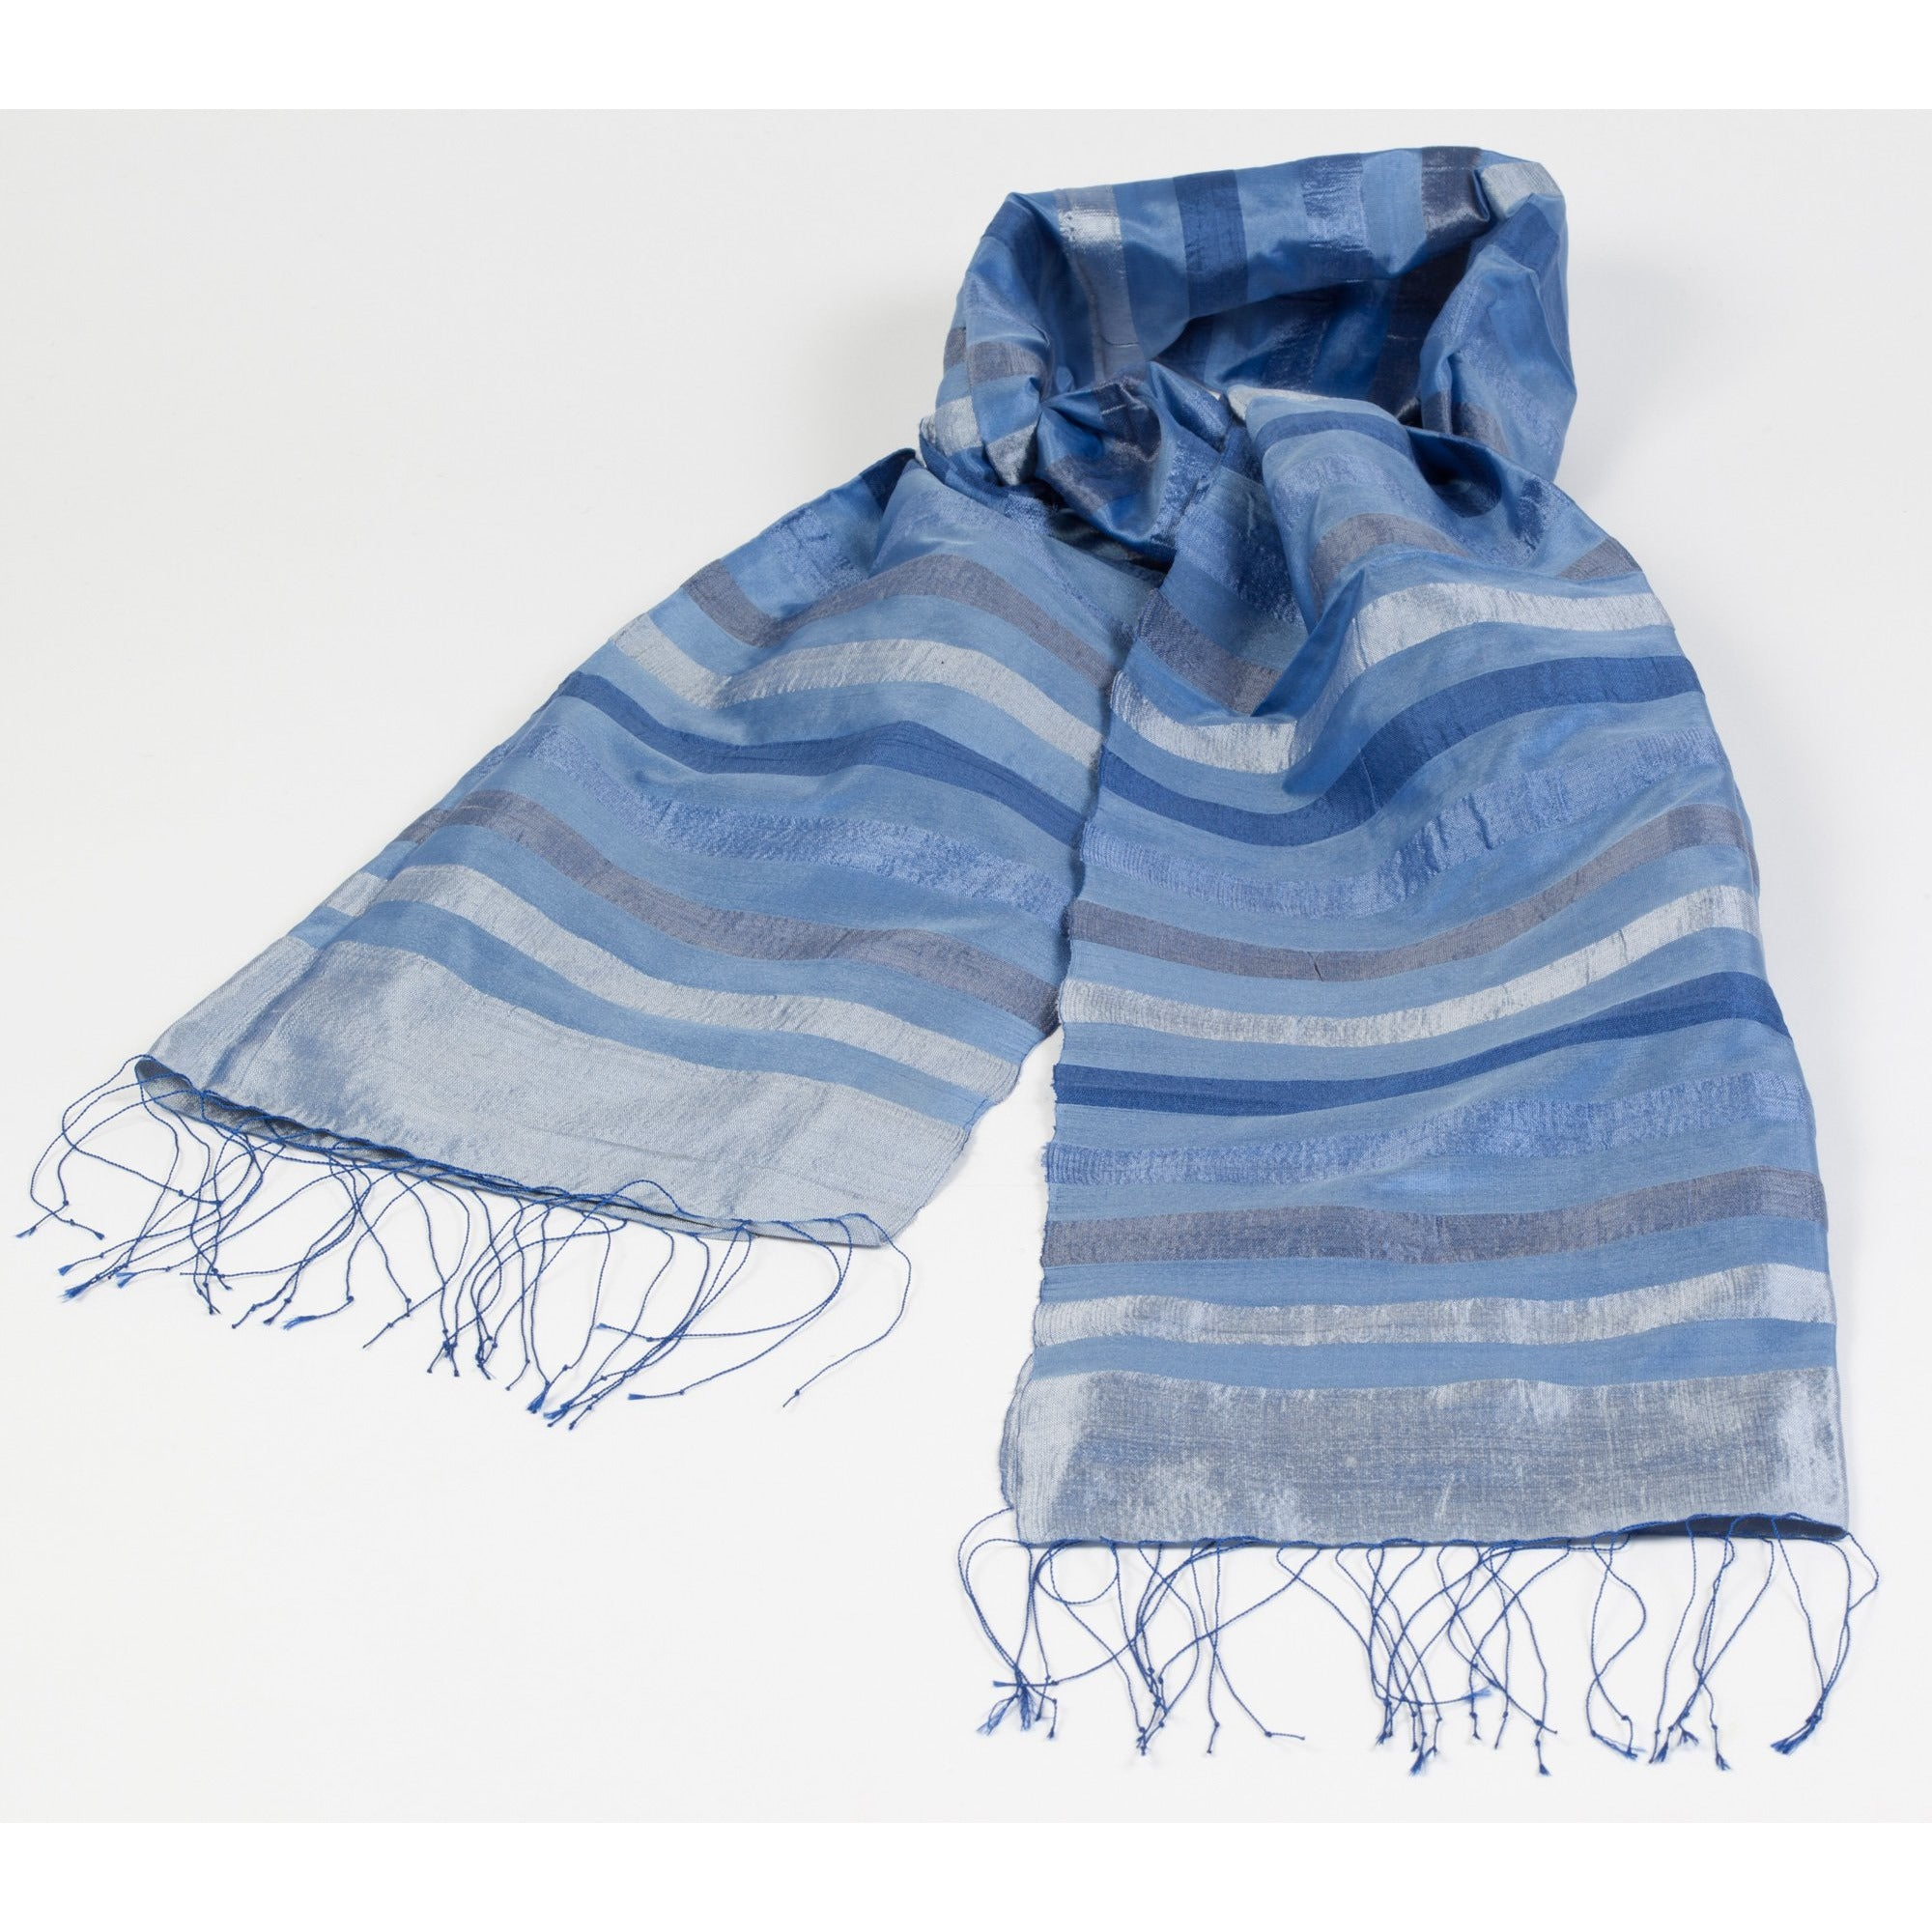 Foulard en pure soie du Laos / Collection Aquarelle